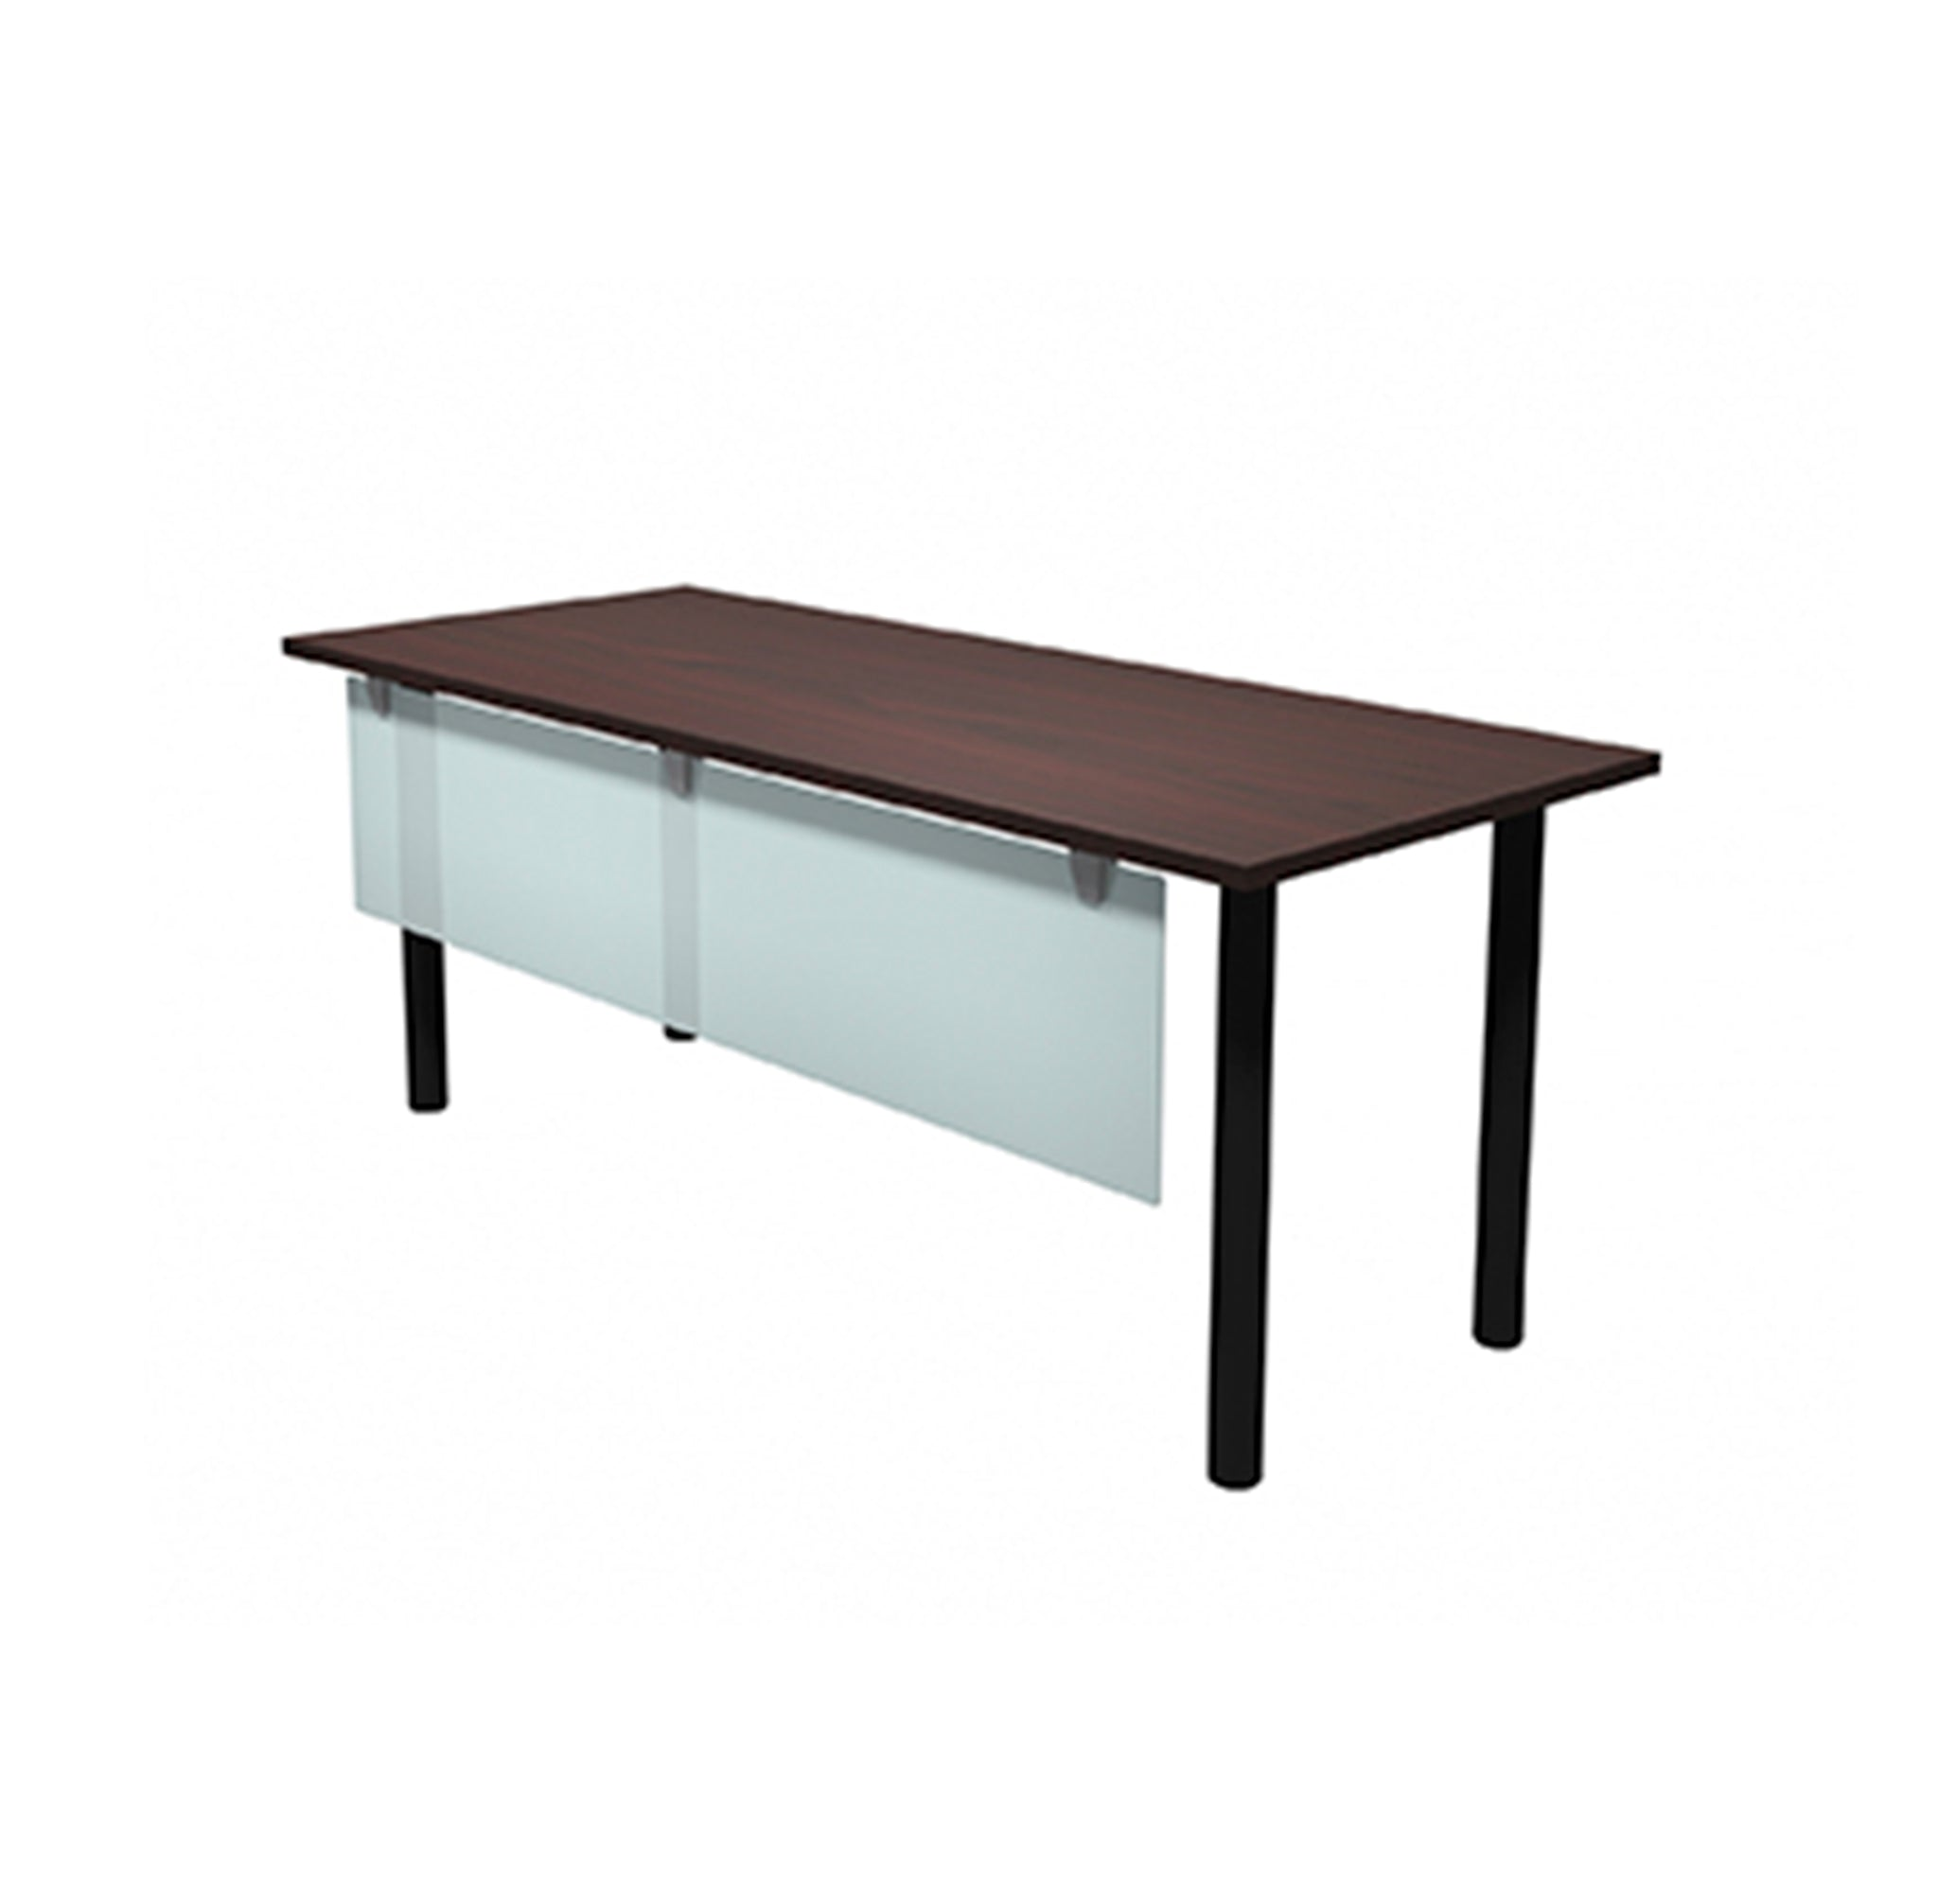 "Innovations 30 x 66"" Rectangular Table"